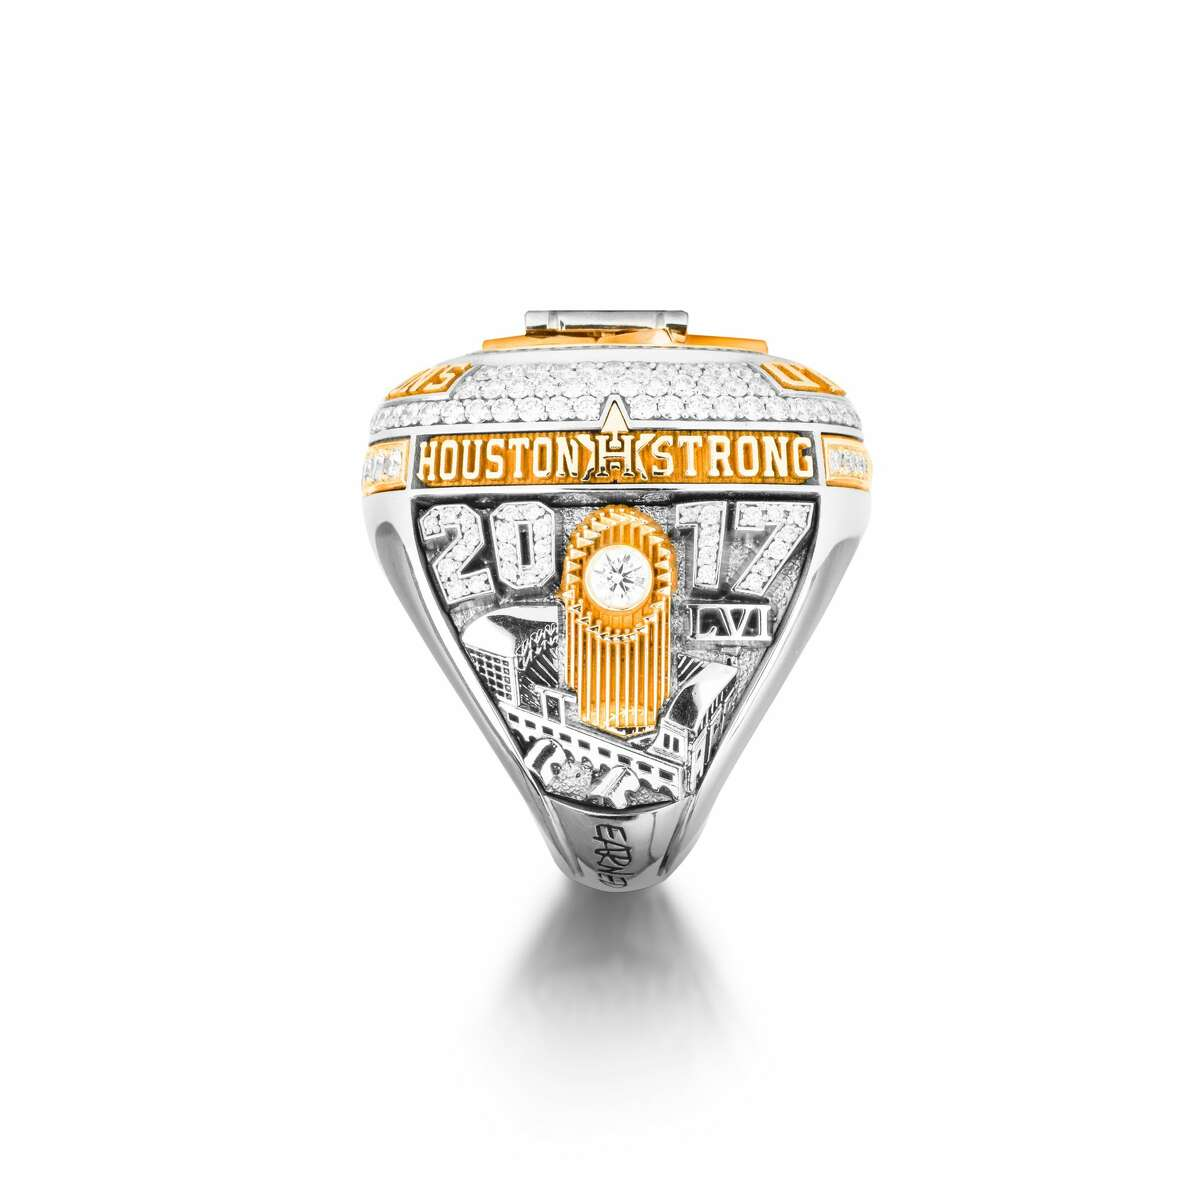 A look at the Houston Astros' World Series rings.